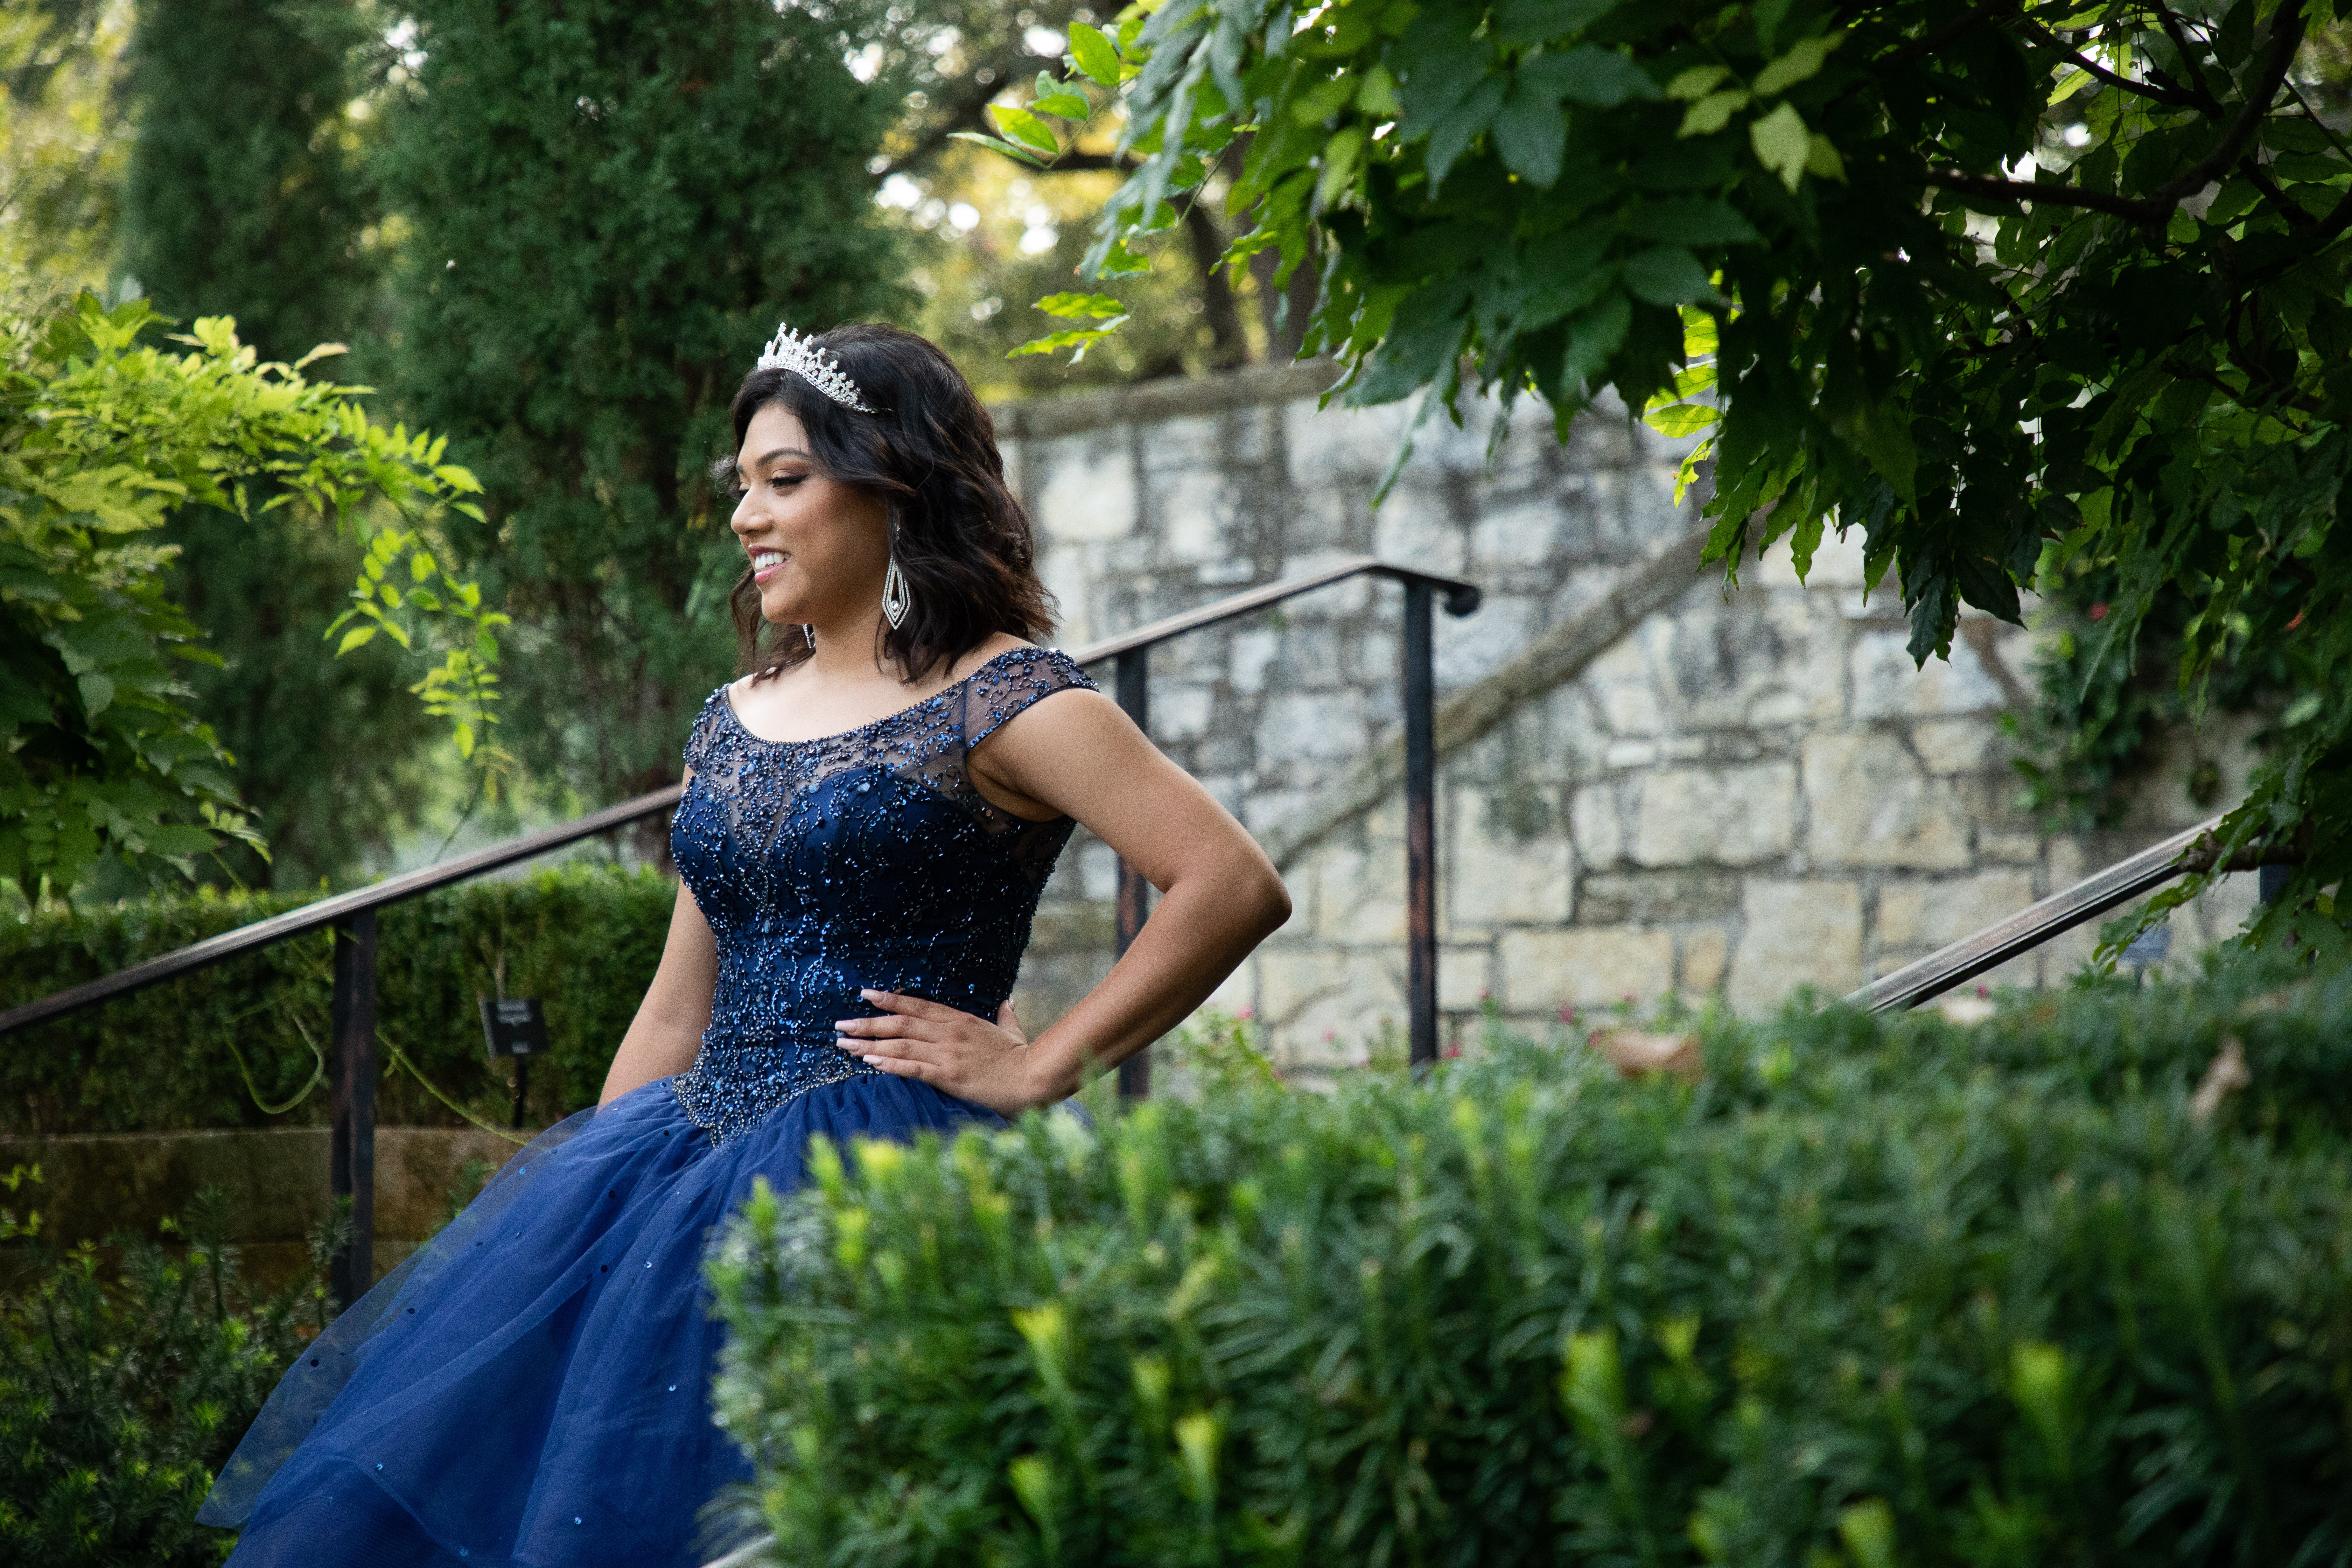 Photo of Yailyn Gomez in her blue dress with lots of sparkles and a crown on the stairs at the Dallas Arboretum.